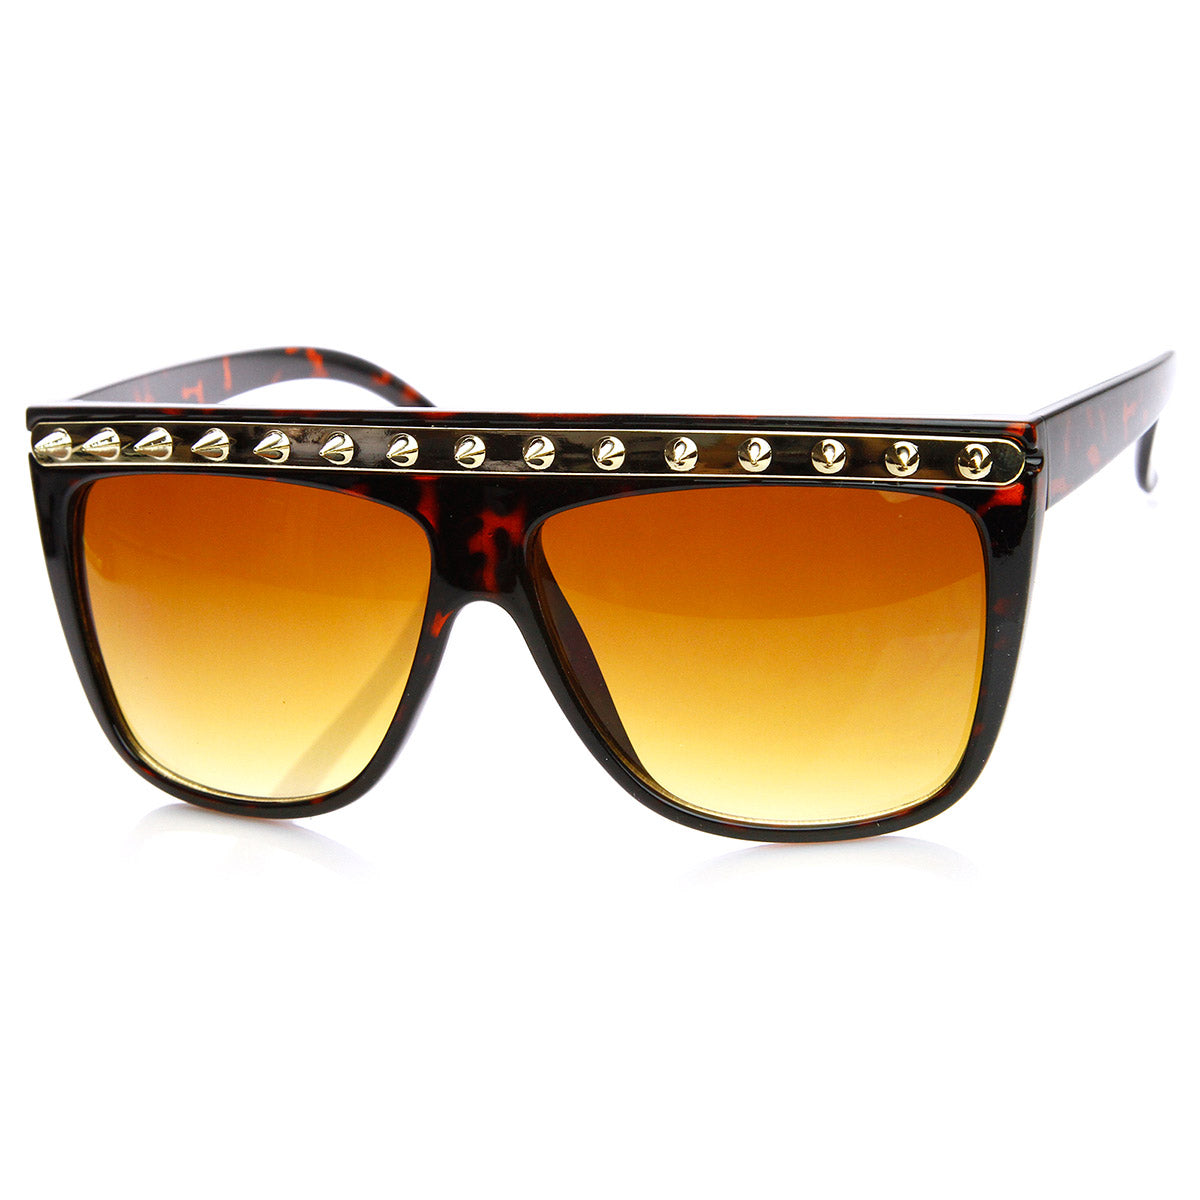 Spiked Fashion Metal Accent Flat Top Horn Rimmed Sunglasses Black-Gunmetal